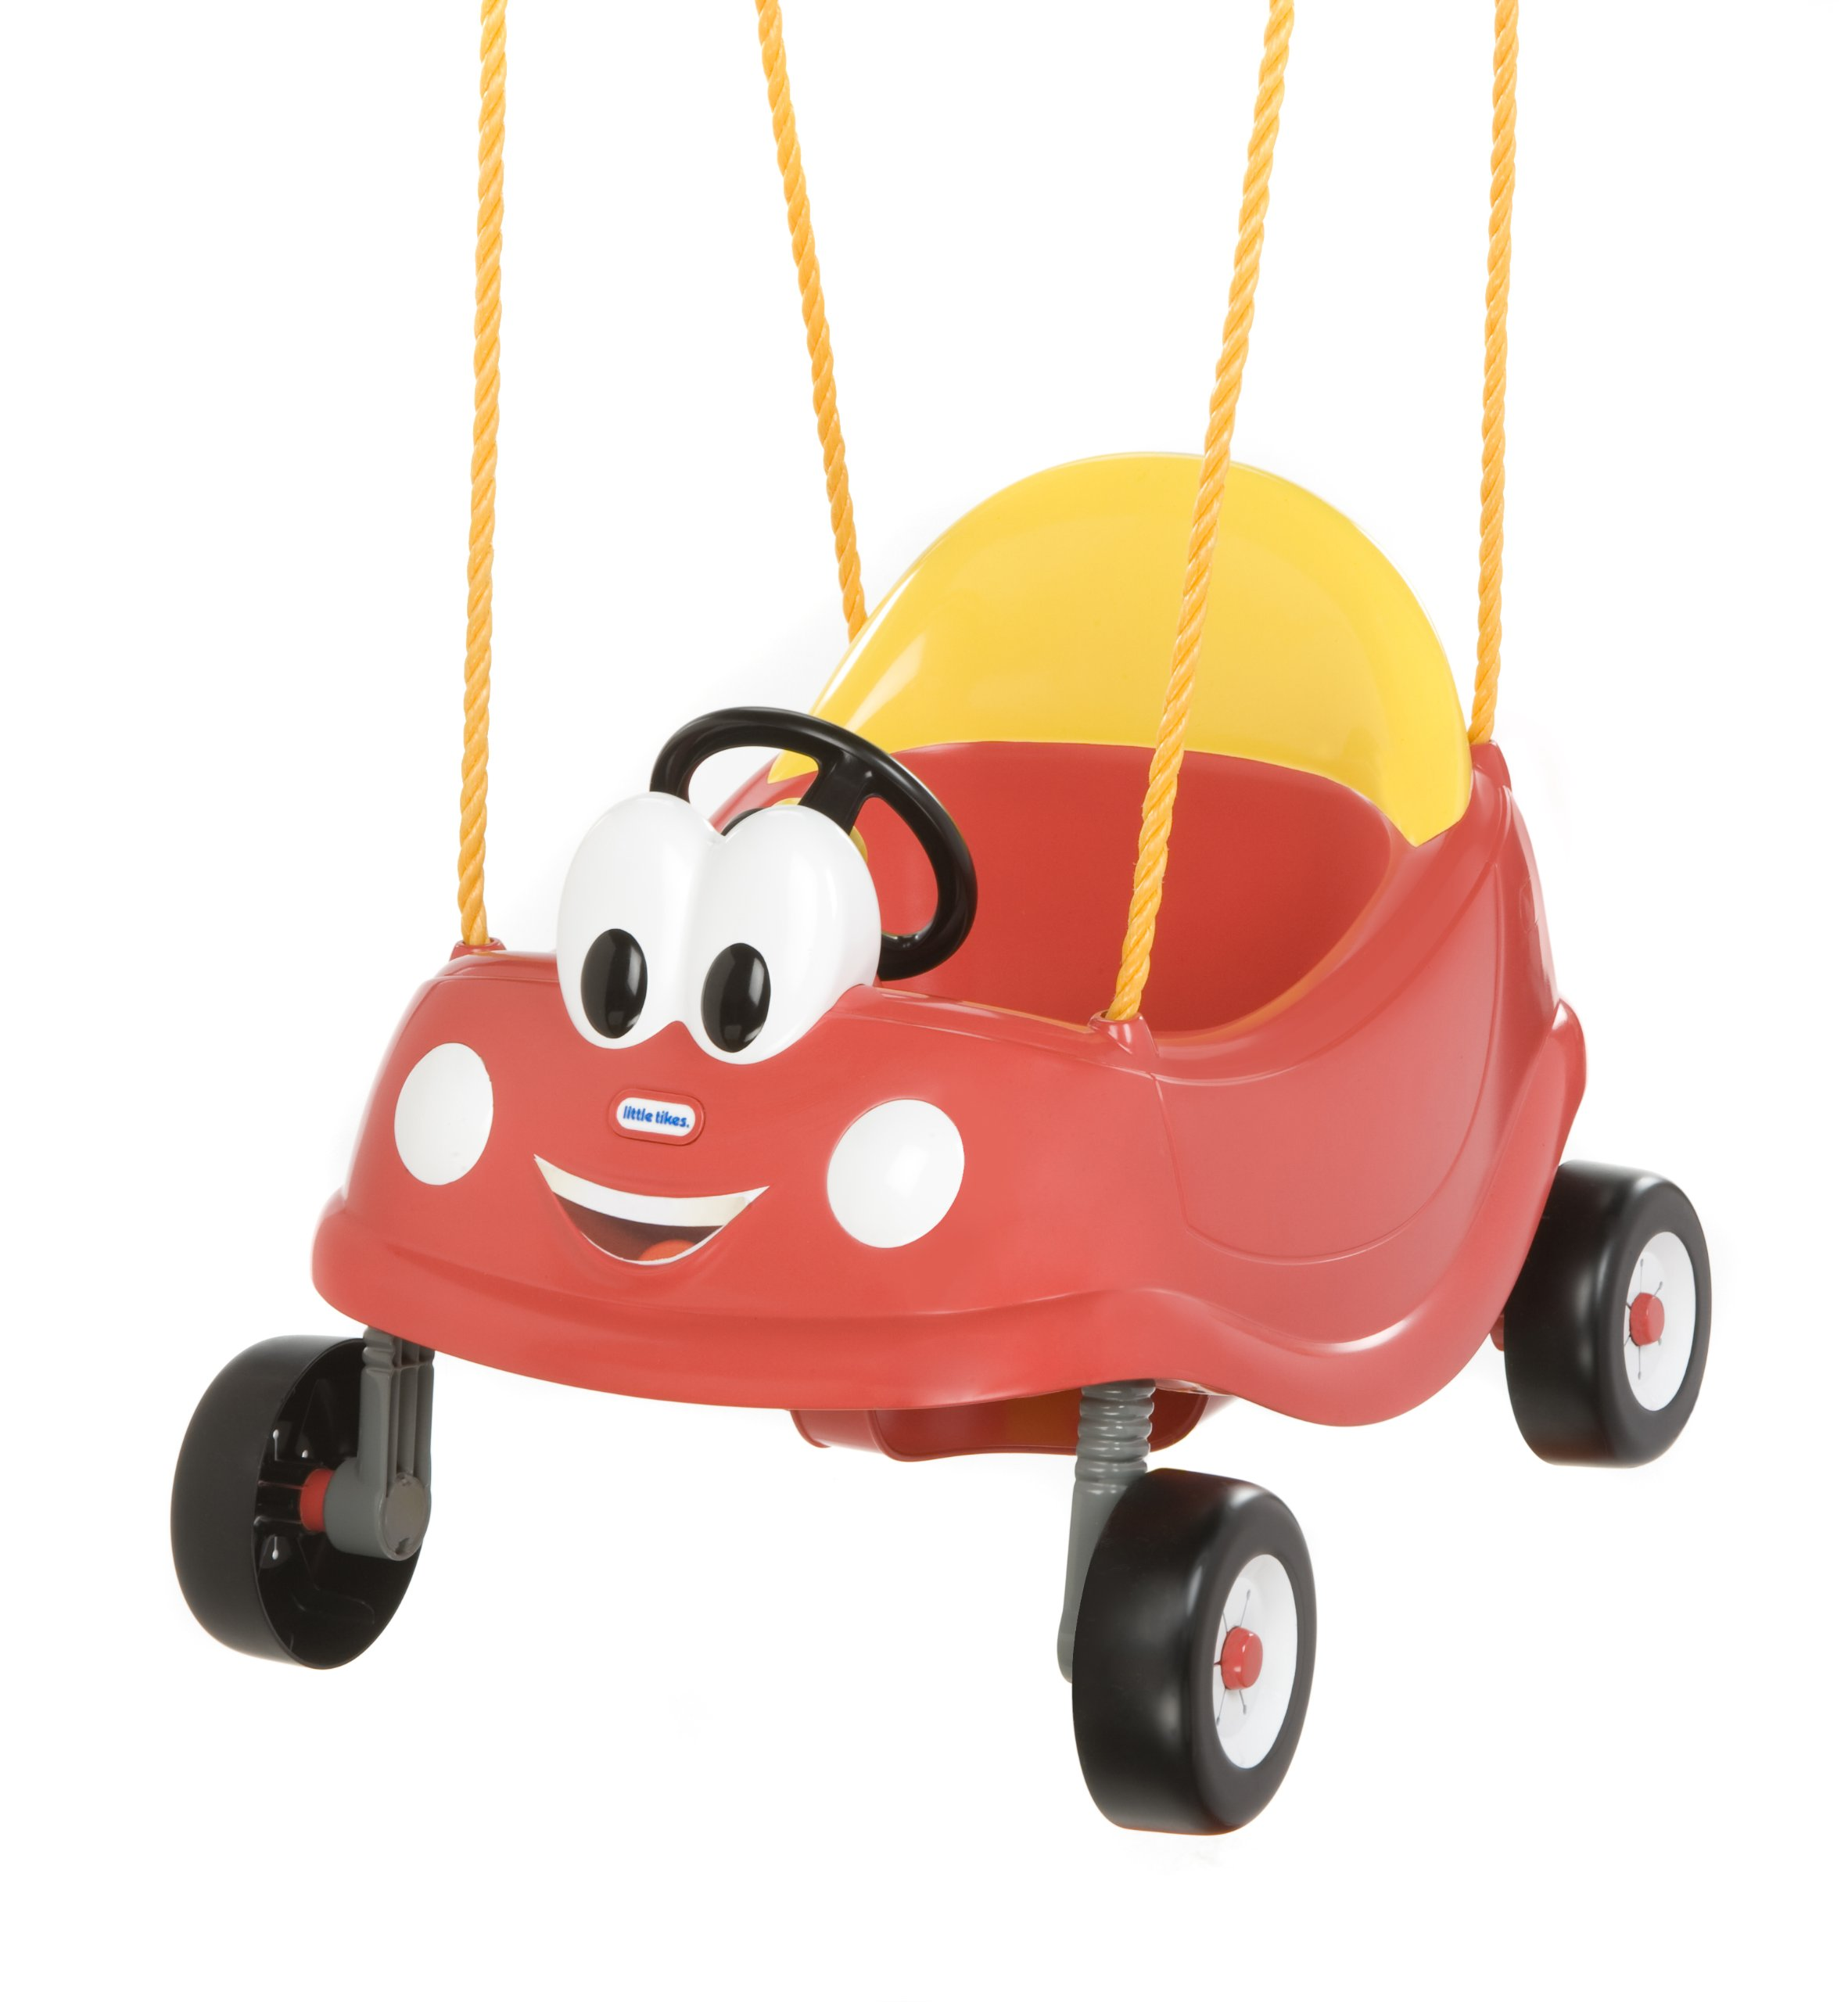 Little Tikes Cozy Coupe First Swing by Little Tikes